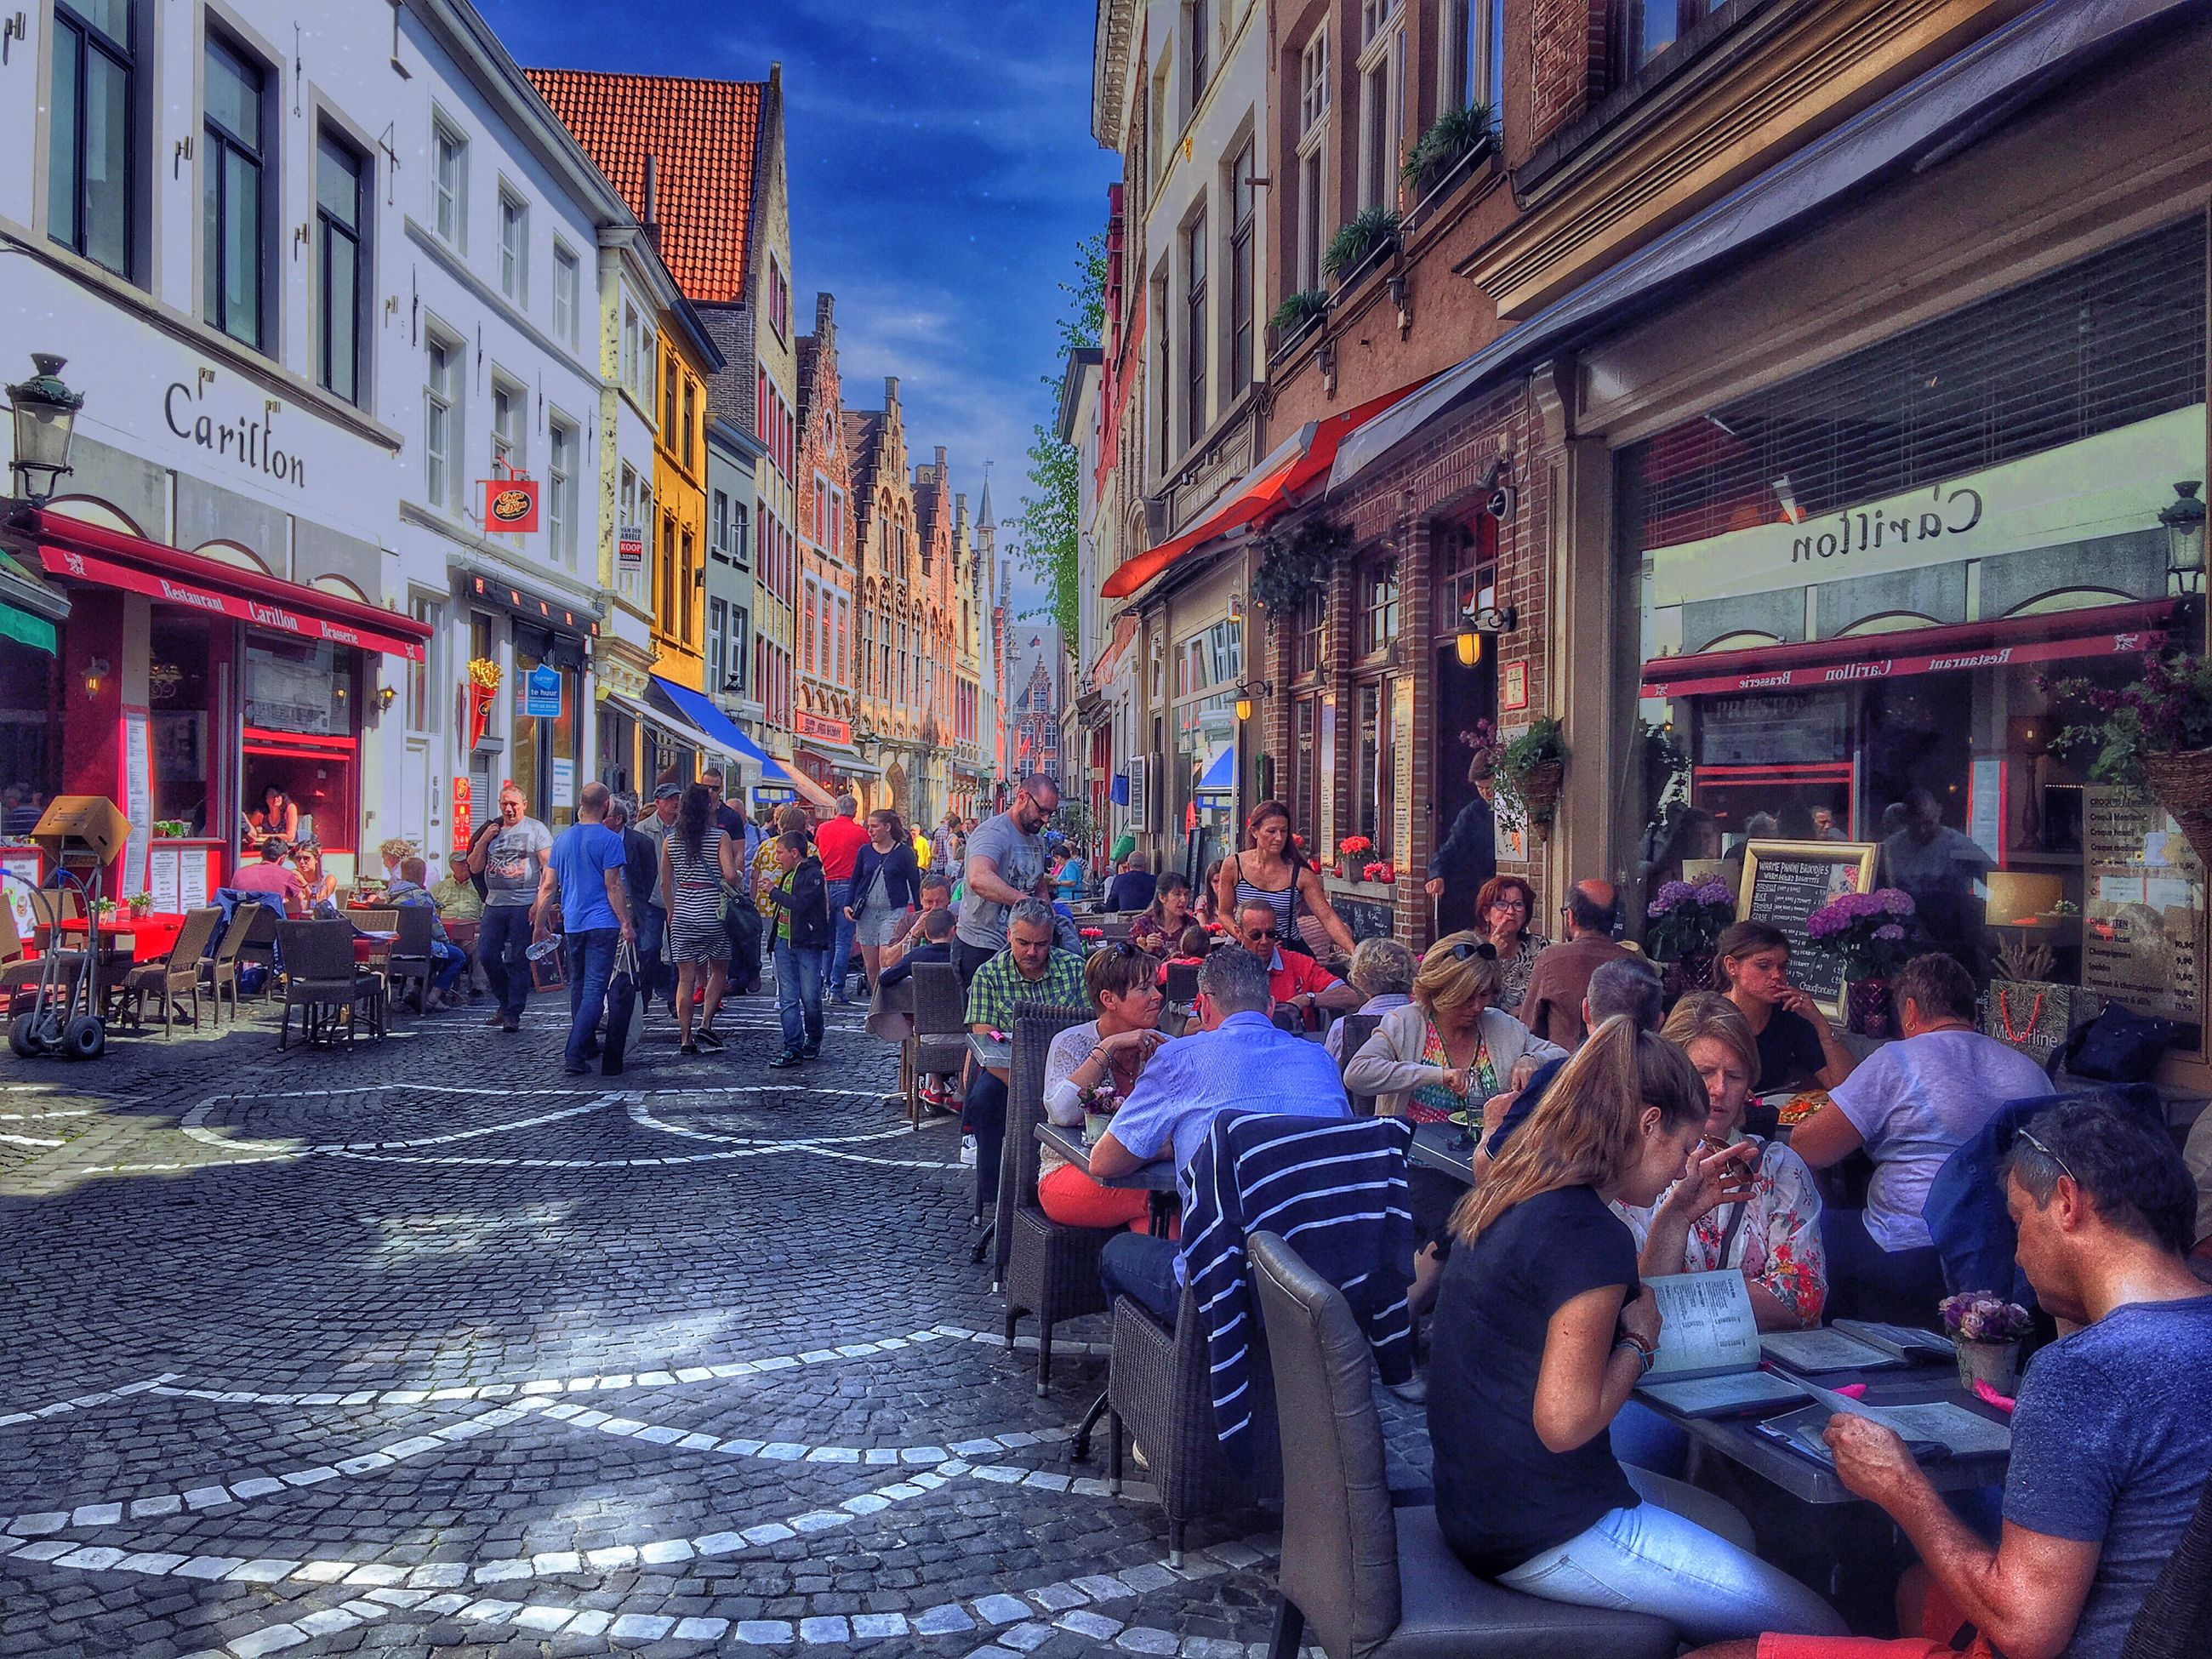 building exterior, architecture, built structure, lifestyles, men, leisure activity, person, large group of people, street, city, city life, illuminated, casual clothing, crowd, building, walking, celebration, outdoors, residential building